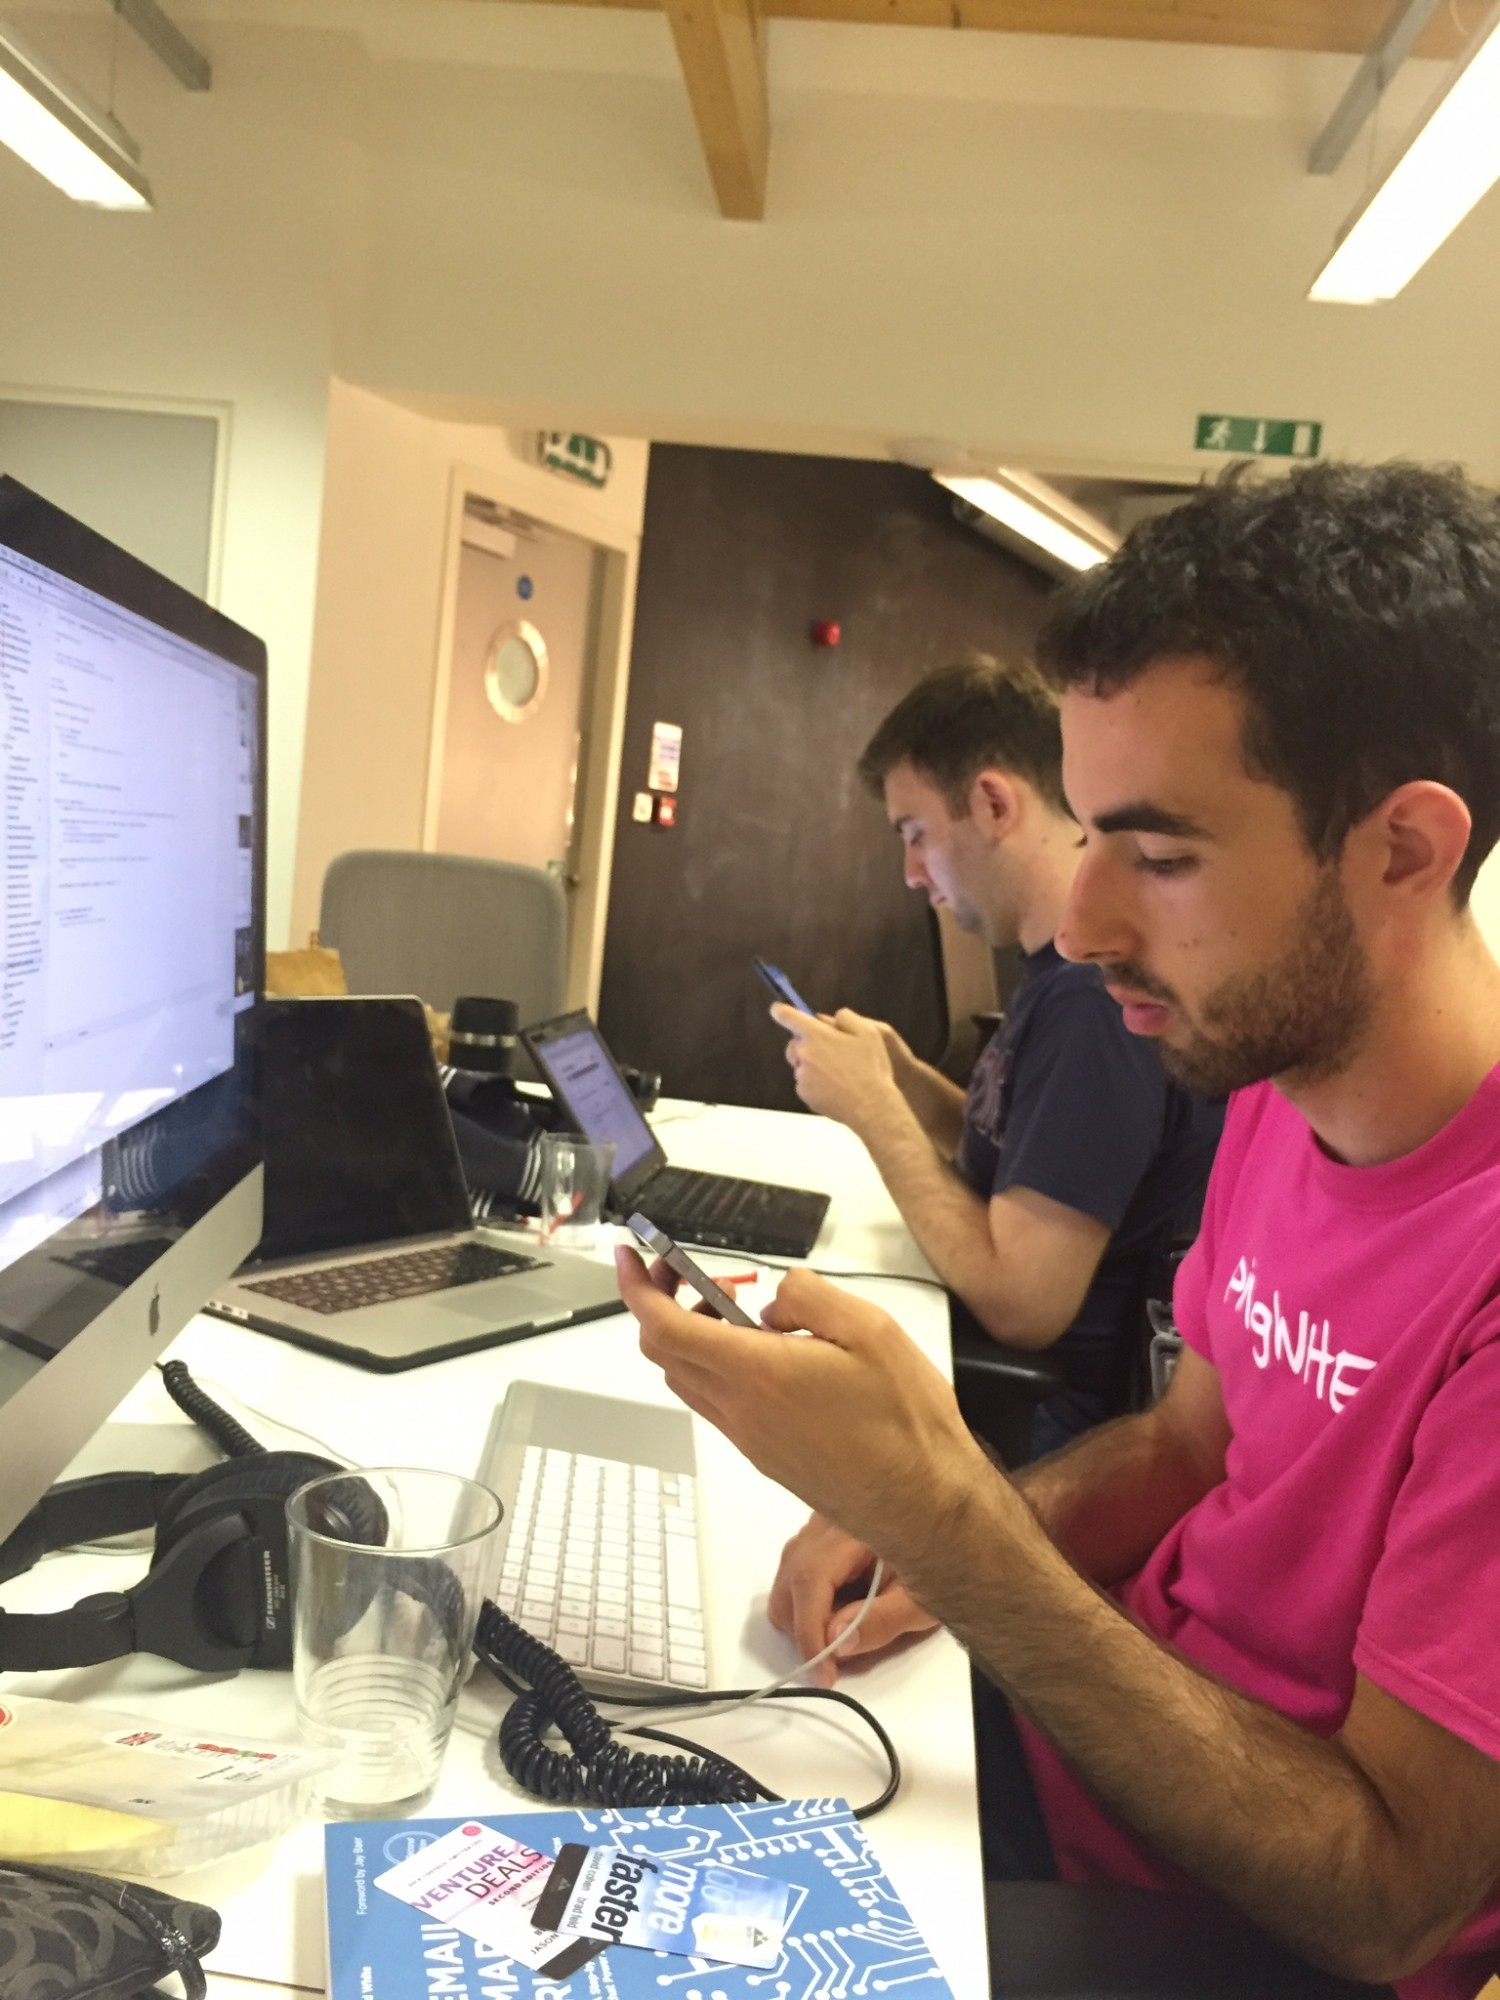 Sam working with Eduard (Hackstar) on the new website